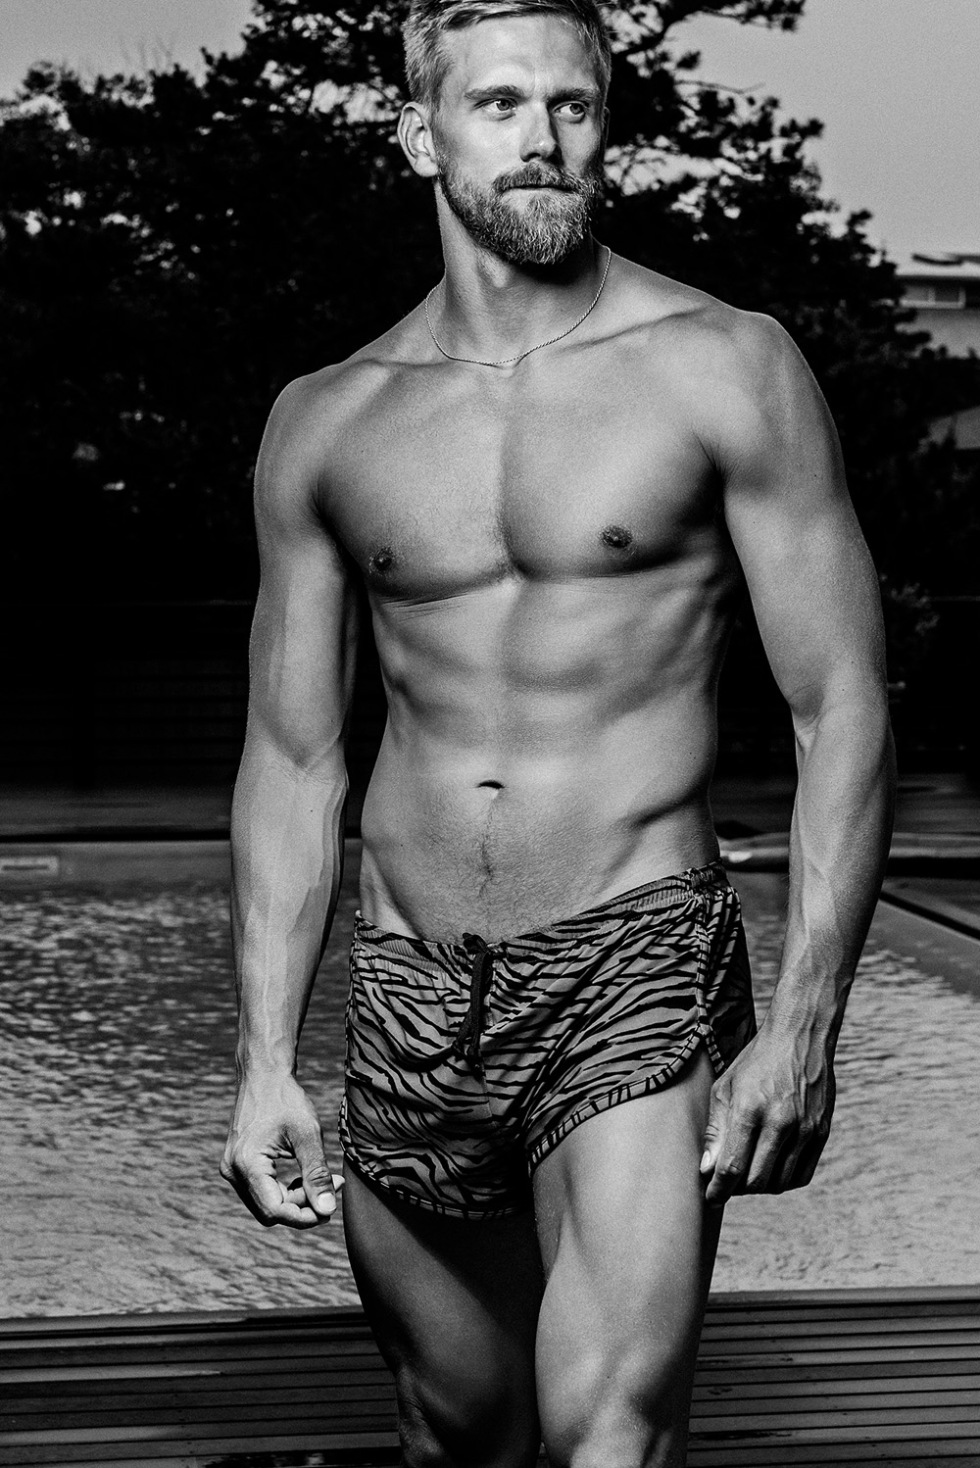 Prolific photographer talented Kamera Addikt beautifully captures the handsome adonis Adam Perry out of the pool, Happy Hump Day!